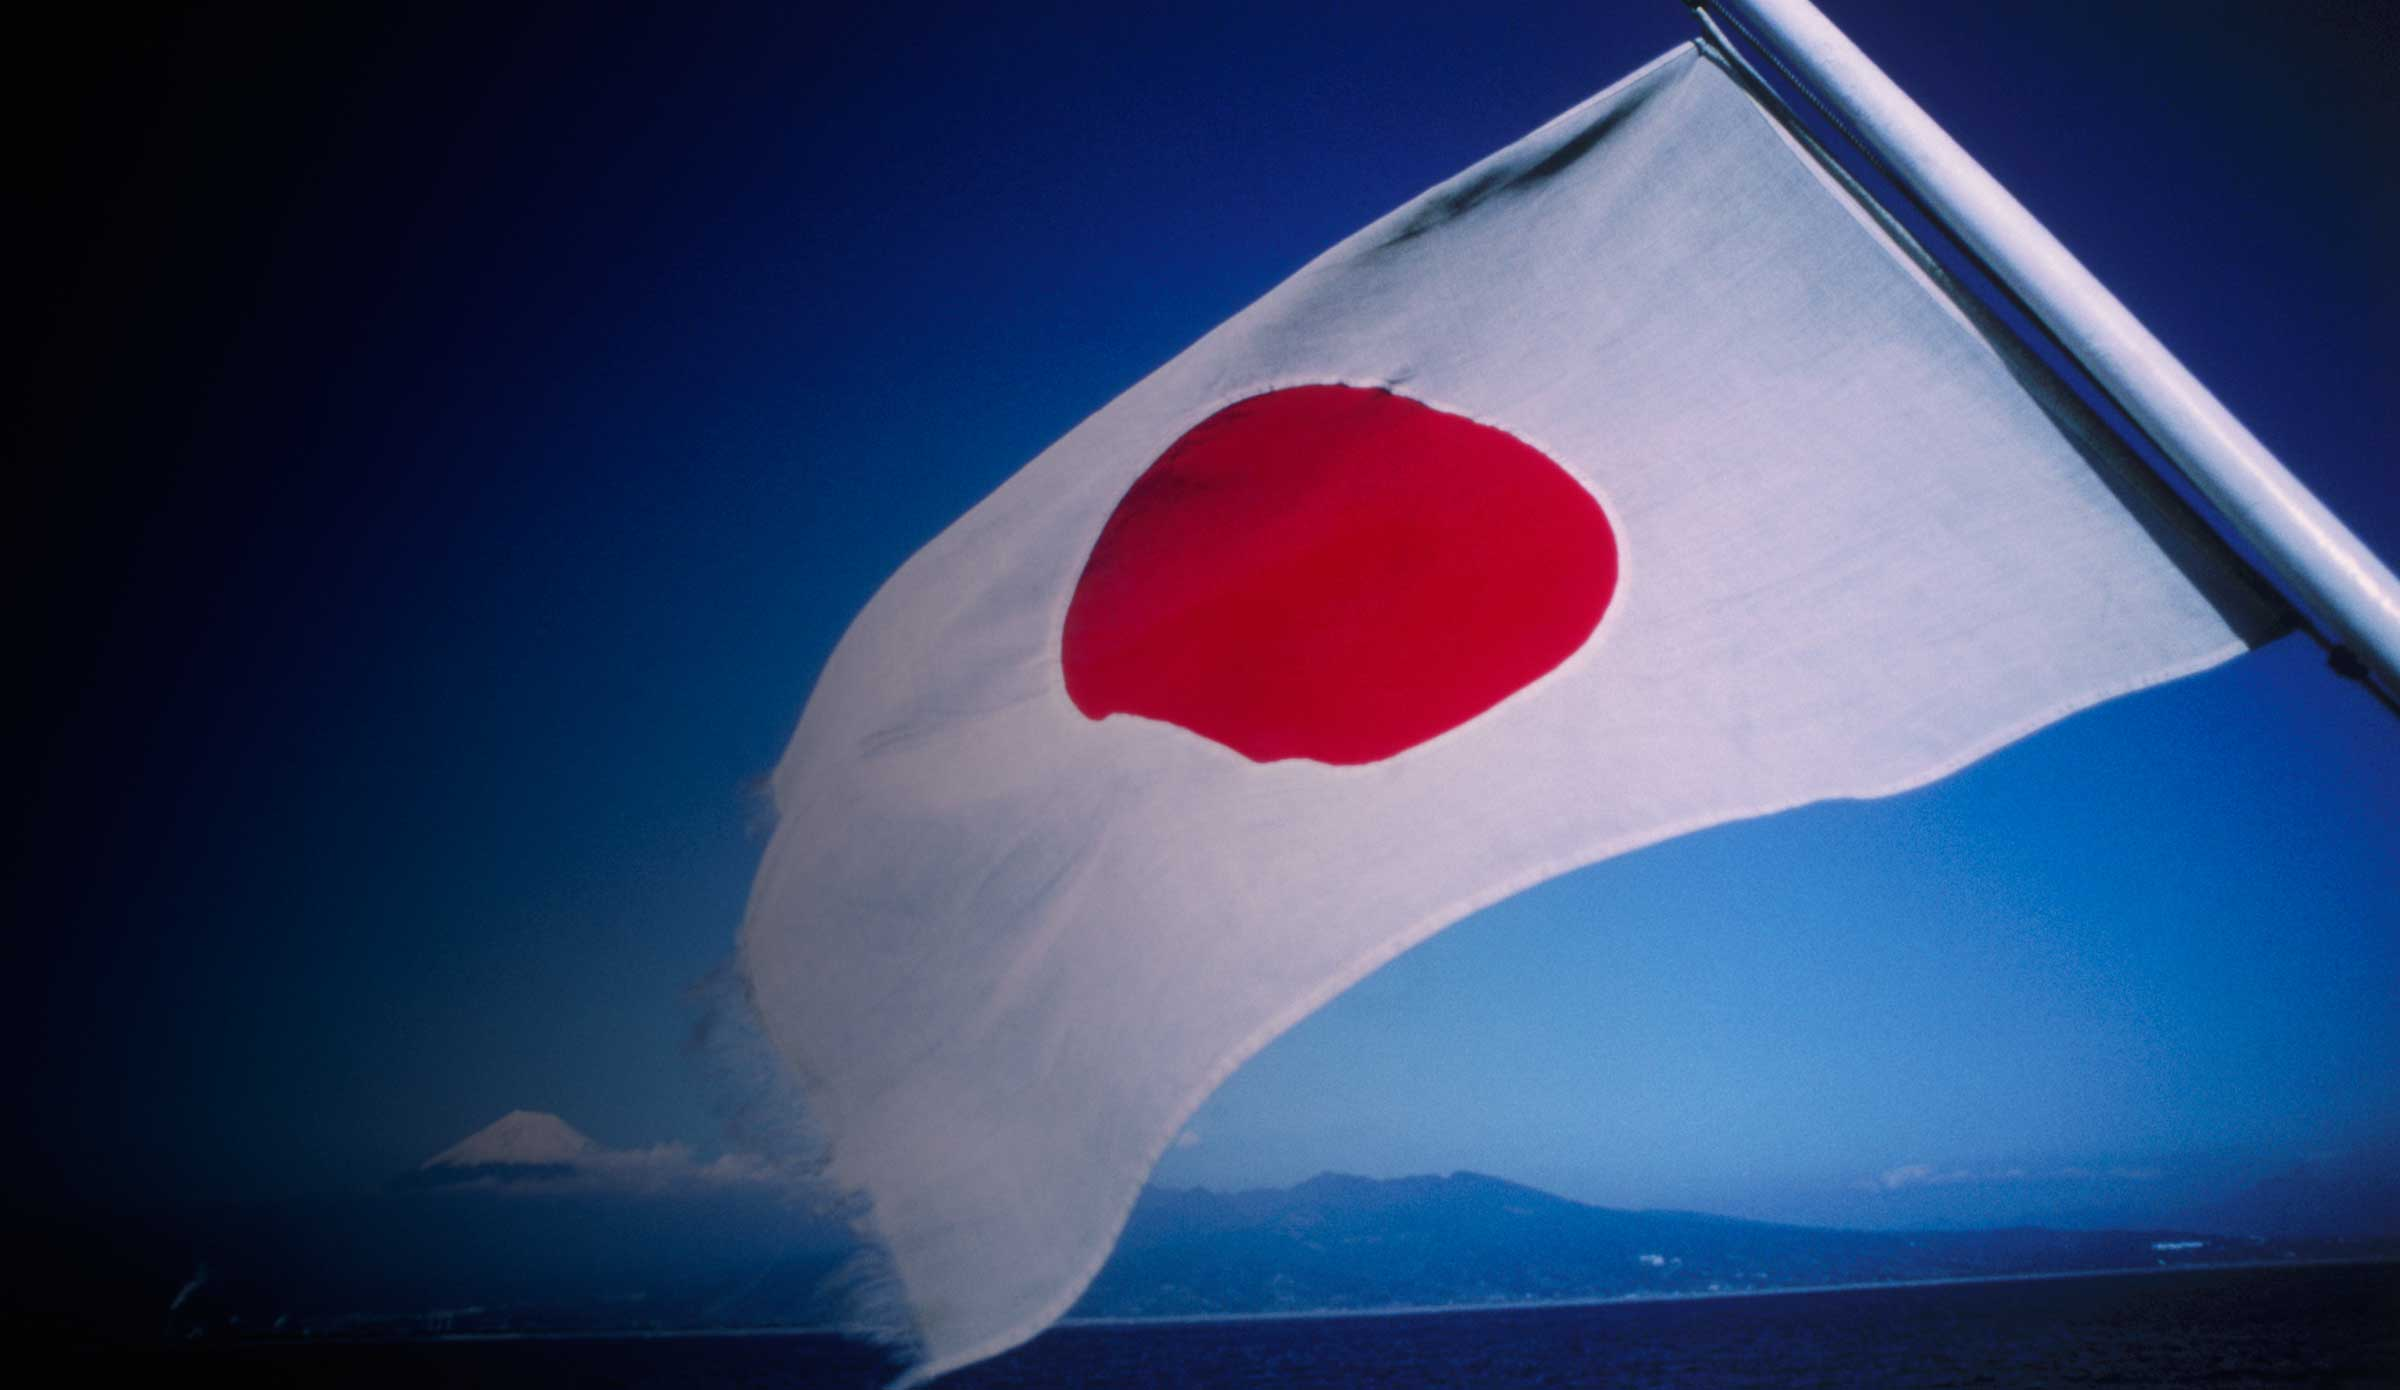 Inbound M&A in Japan: On the rise